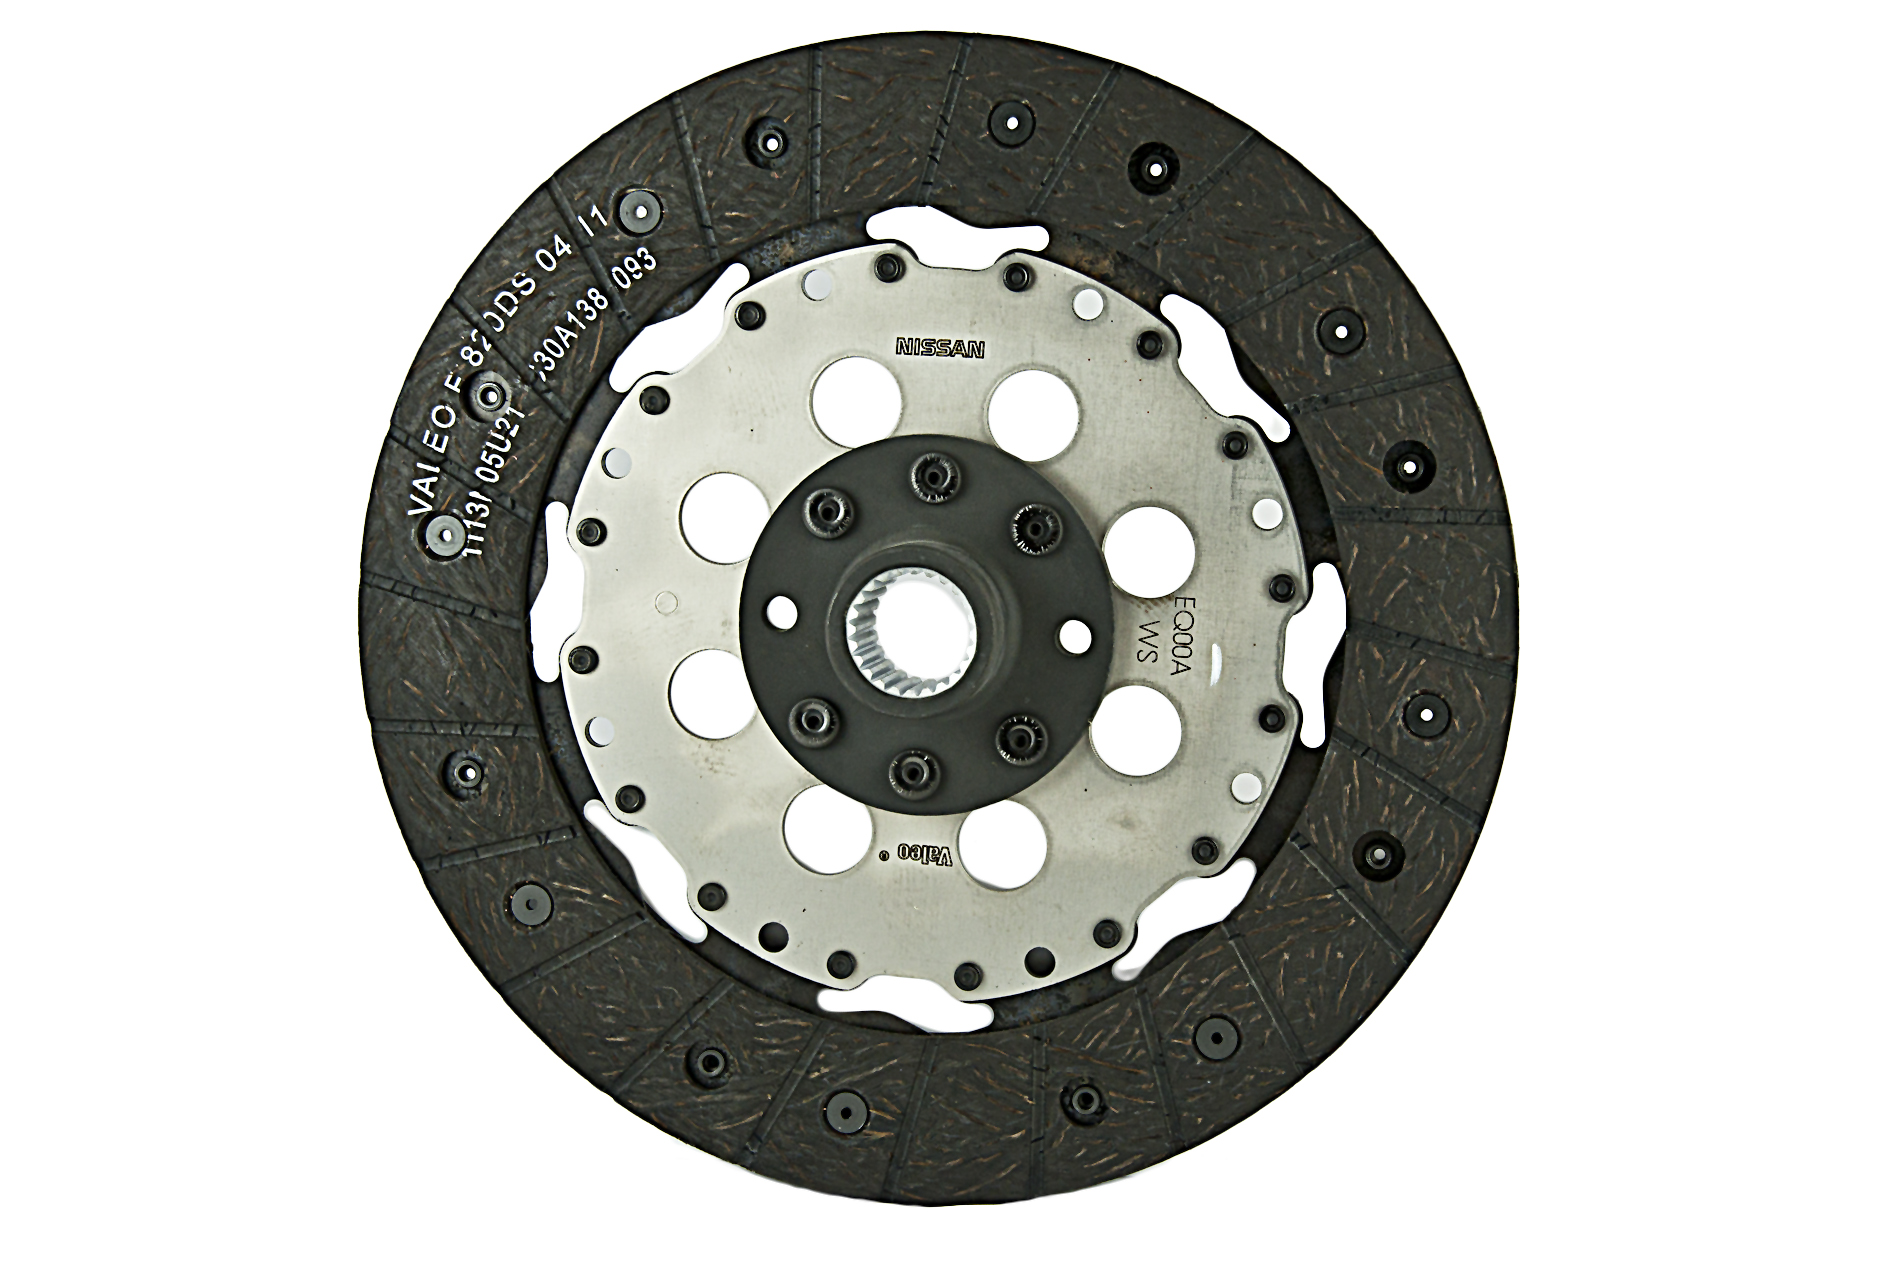 Automotive Clutch Plate : Nissan genuine car replacement clutch friction plate disc